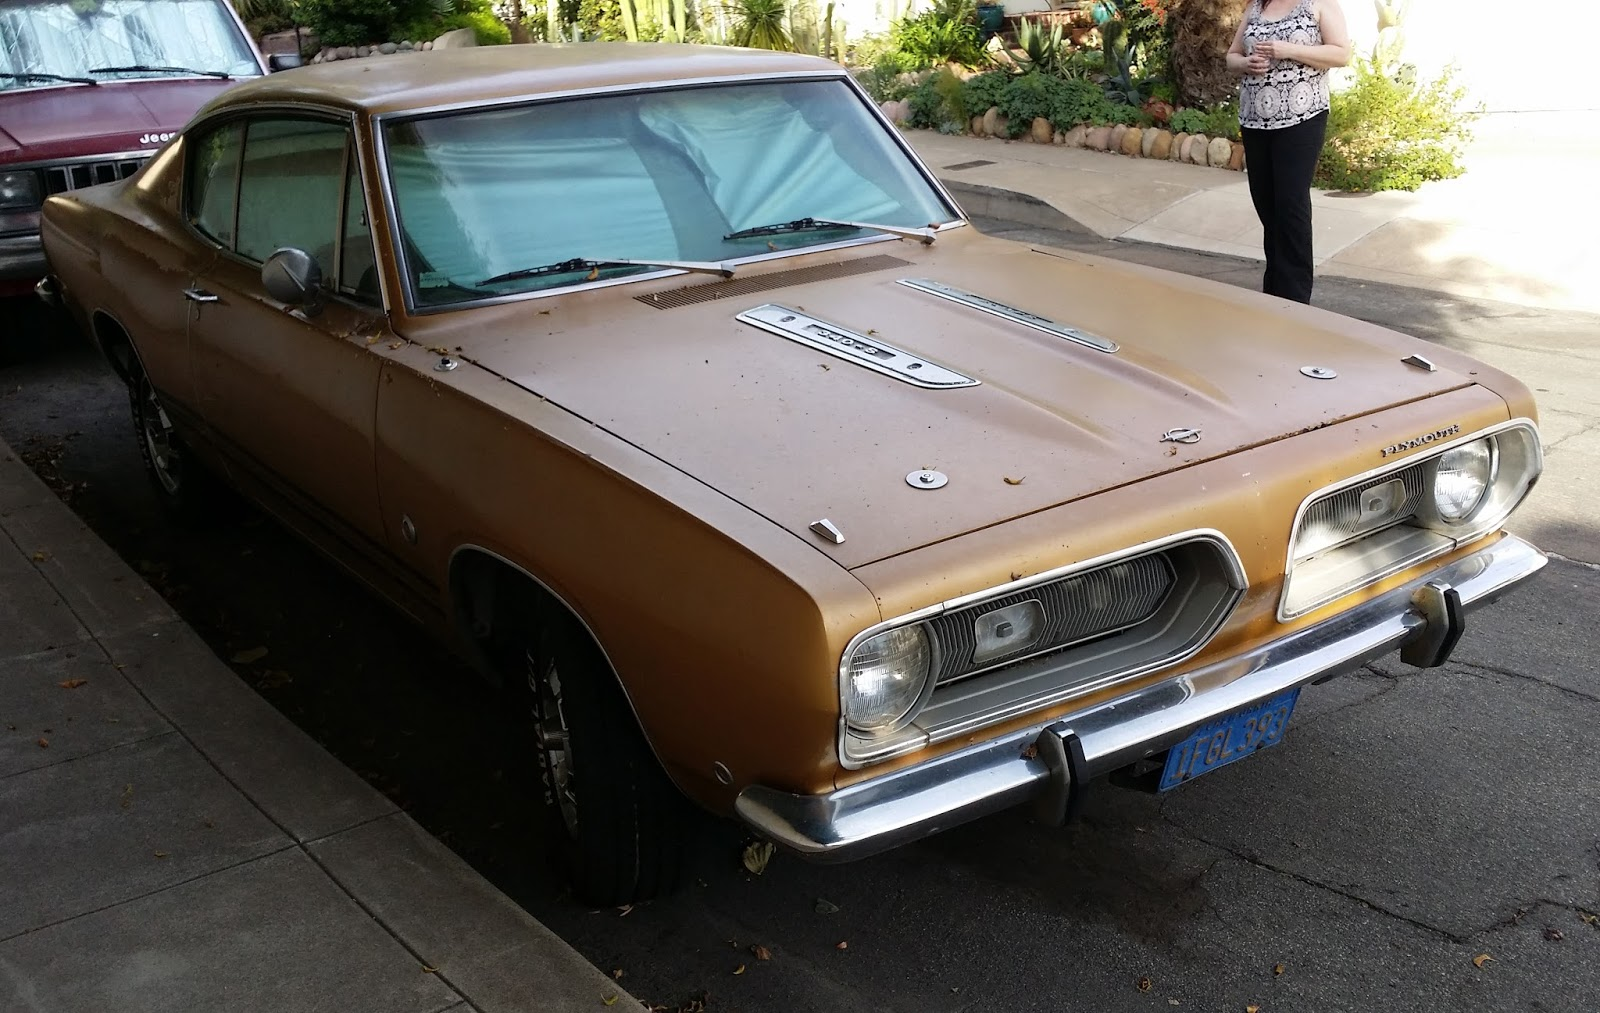 Just A Car Guy: original owner 1968 Barracuda 340-S on a forgottten Blower Motor Wiring Harness Barracuda on 2005 canyon fan harness, blower motor fan, blower motor control module, blower resistor 2005 gmc canyon recall, blower motor fuse, blower motor pulley, blower motor filter, blower motor circuit breaker, blower motor mounting bracket, blower motor coil, blower motor resistor, blower motor thermostat housing, blower resistor location on chrysler concorde, blower motor sensor, blower motor engine, 2007 gmc blower motor harness,